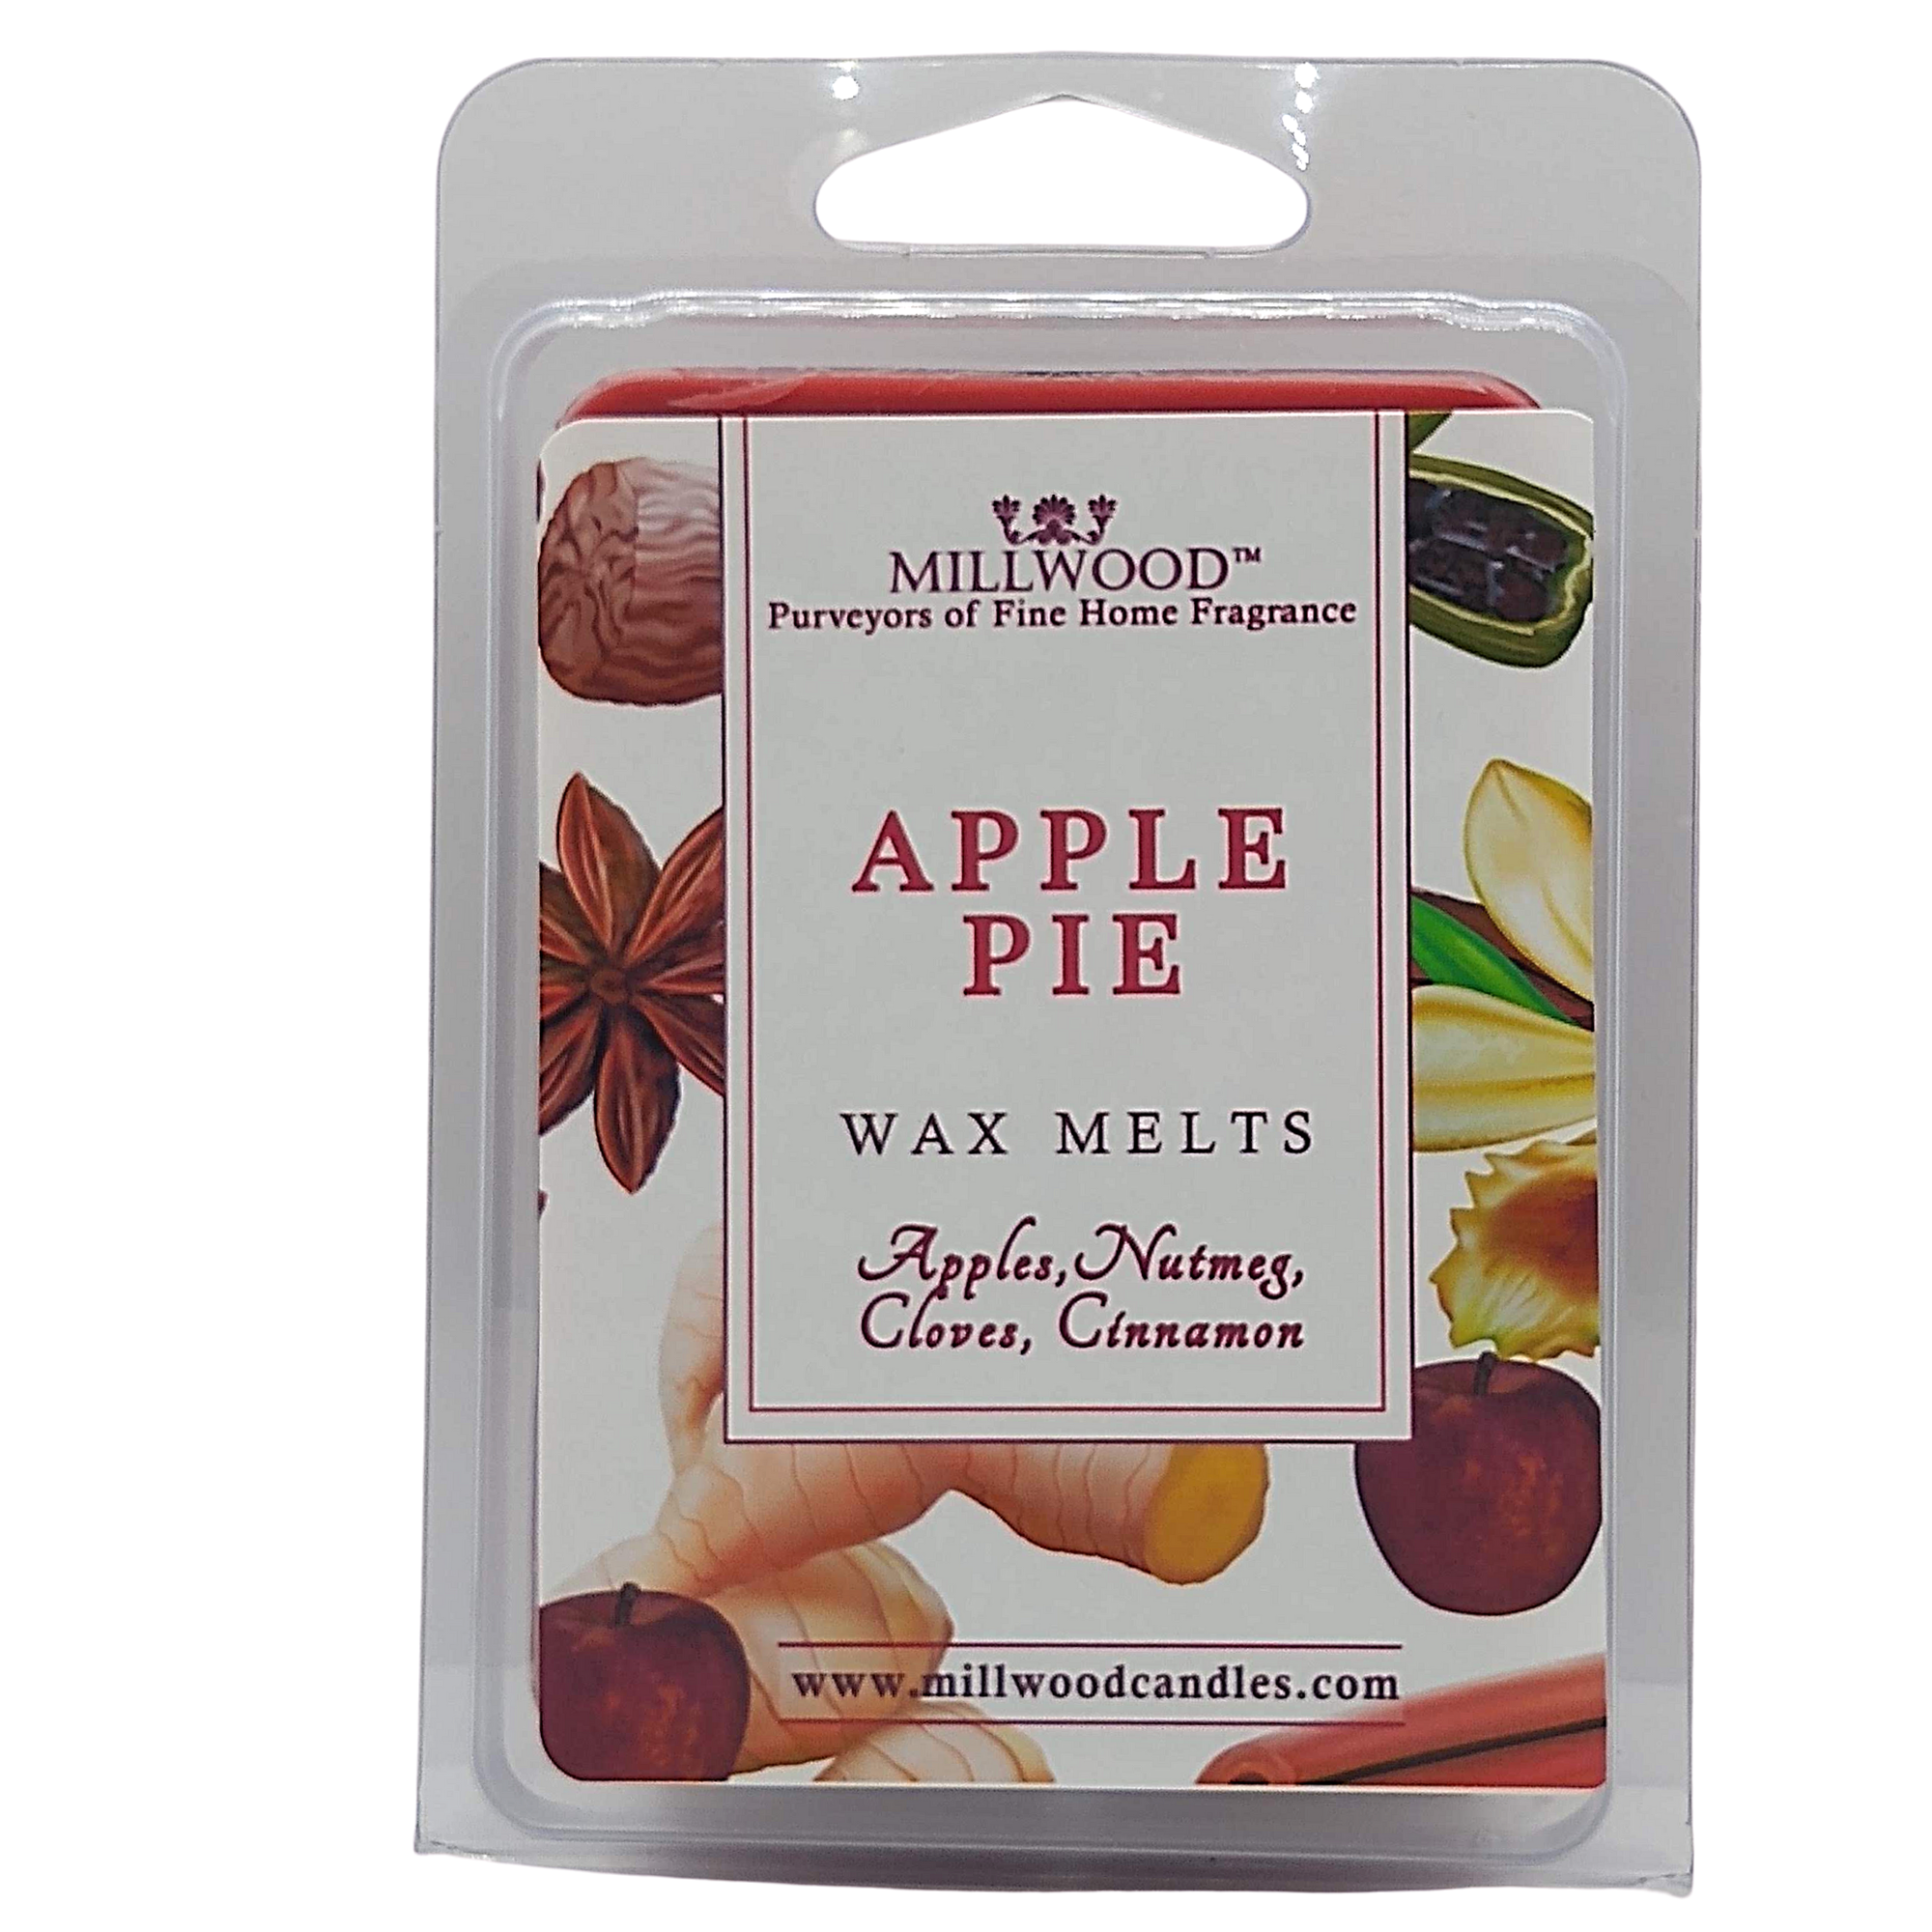 Apple Pie Organic Wax melts by Millwood Candles